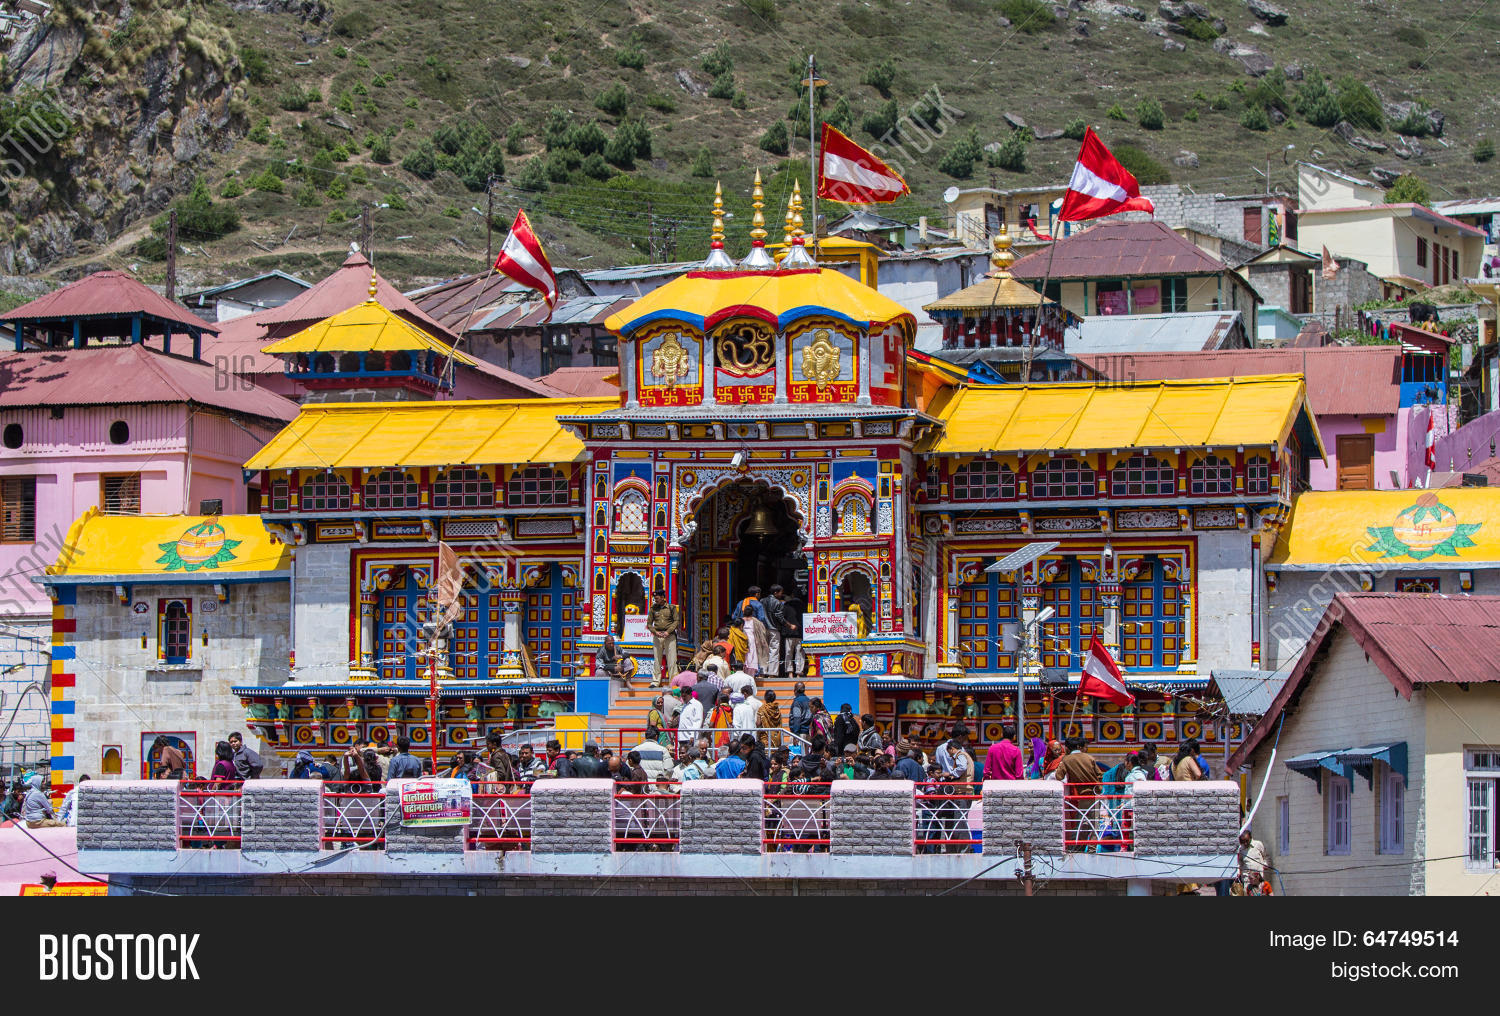 Image result for free image of badrinath